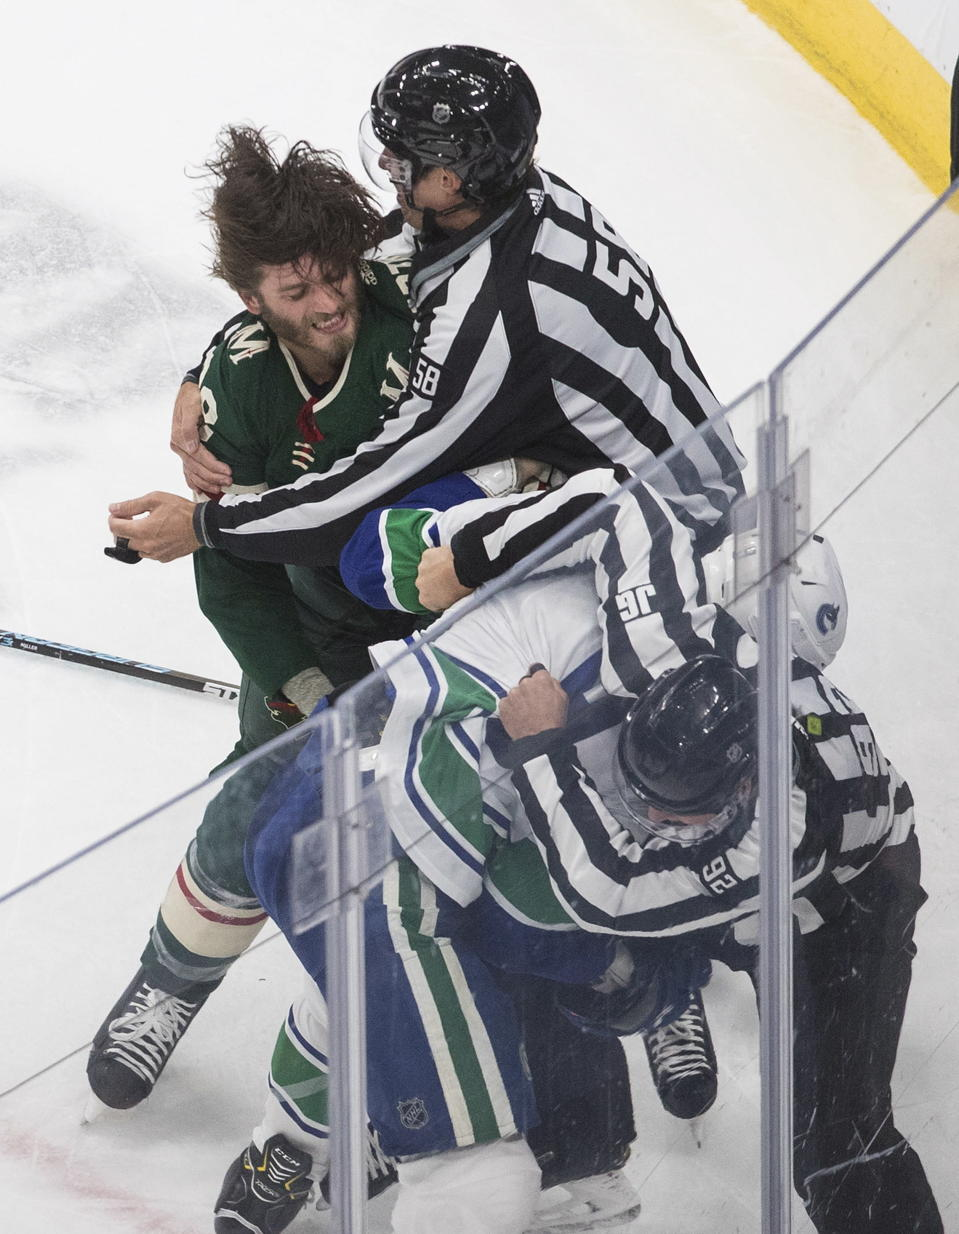 Minnesota Wild's Ryan Hartman (38) and Vancouver Canucks' J.T. Miller (9) fight during second-period NHL hockey game action in Edmonton, Alberta, Thursday, Aug. 6, 2020. (Jason Franson/The Canadian Press via AP)